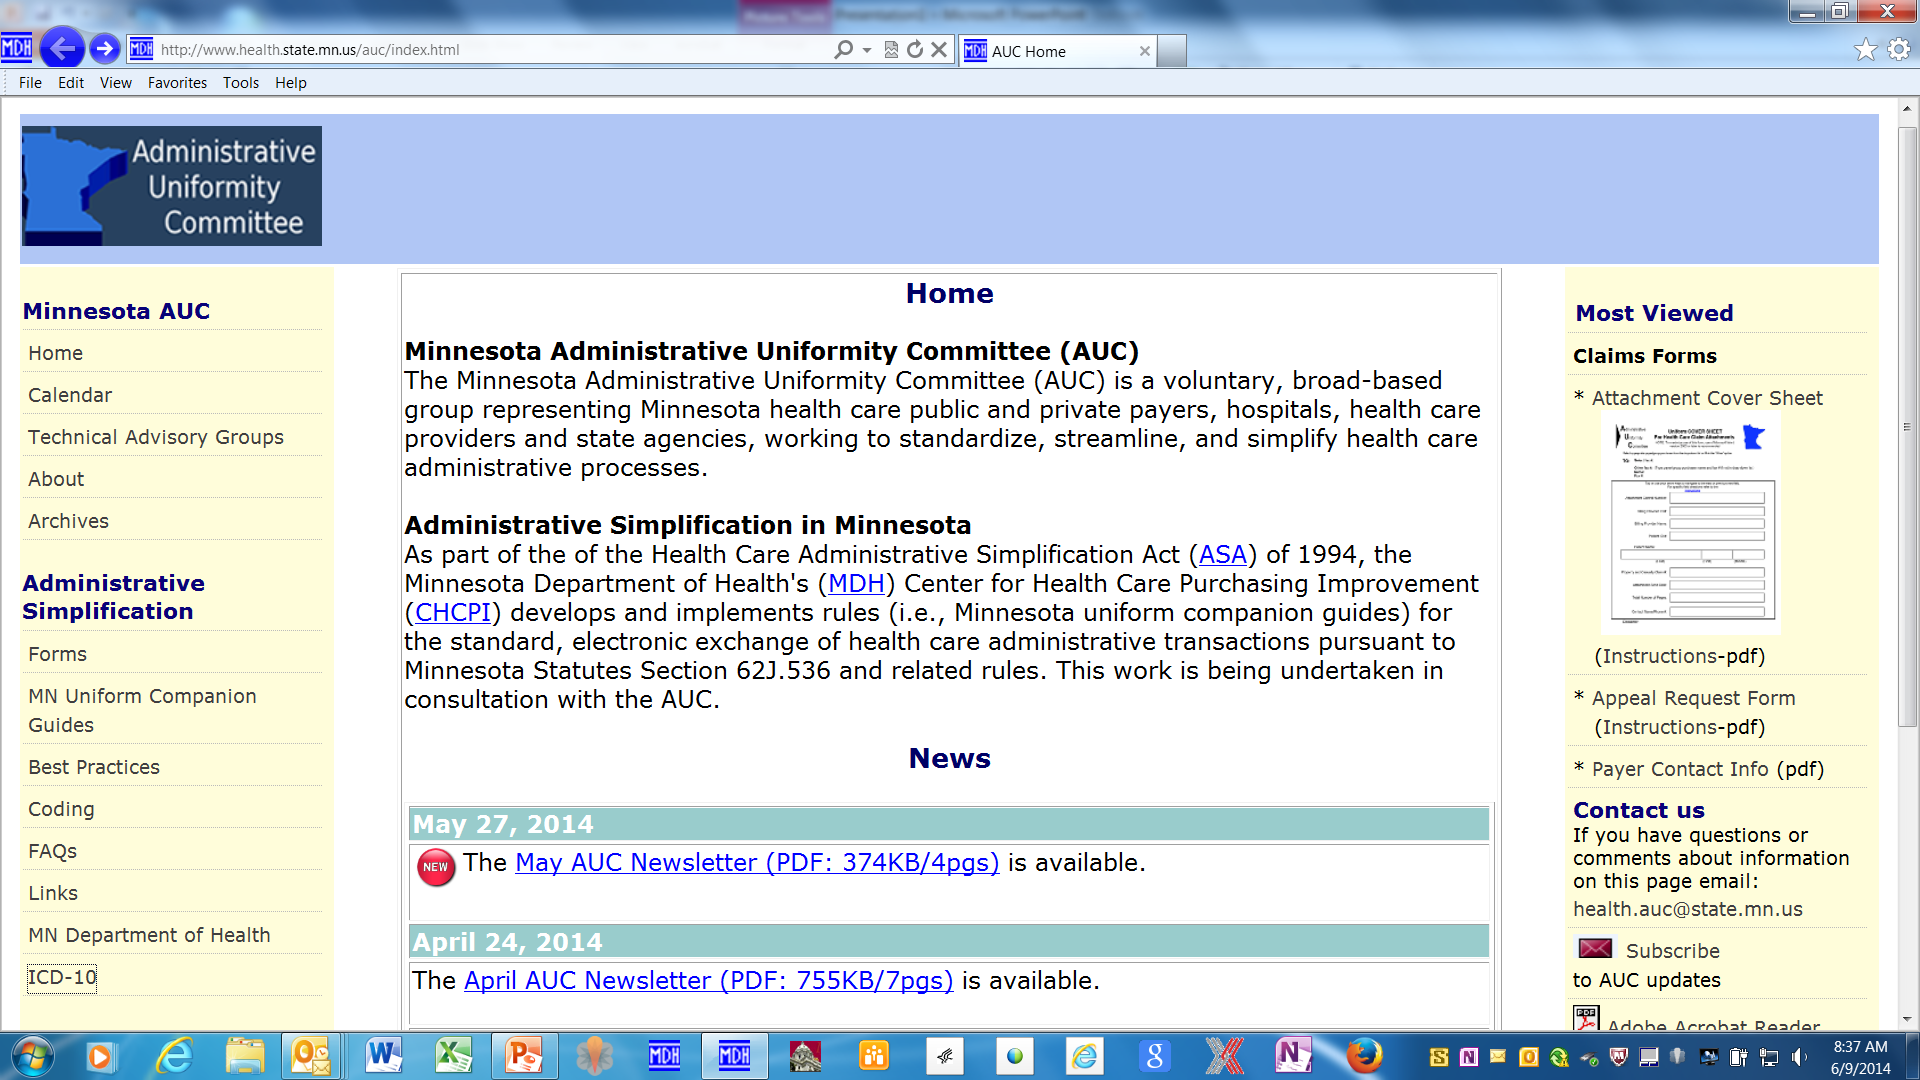 ICD-10 resources AUC homepage: http://www.